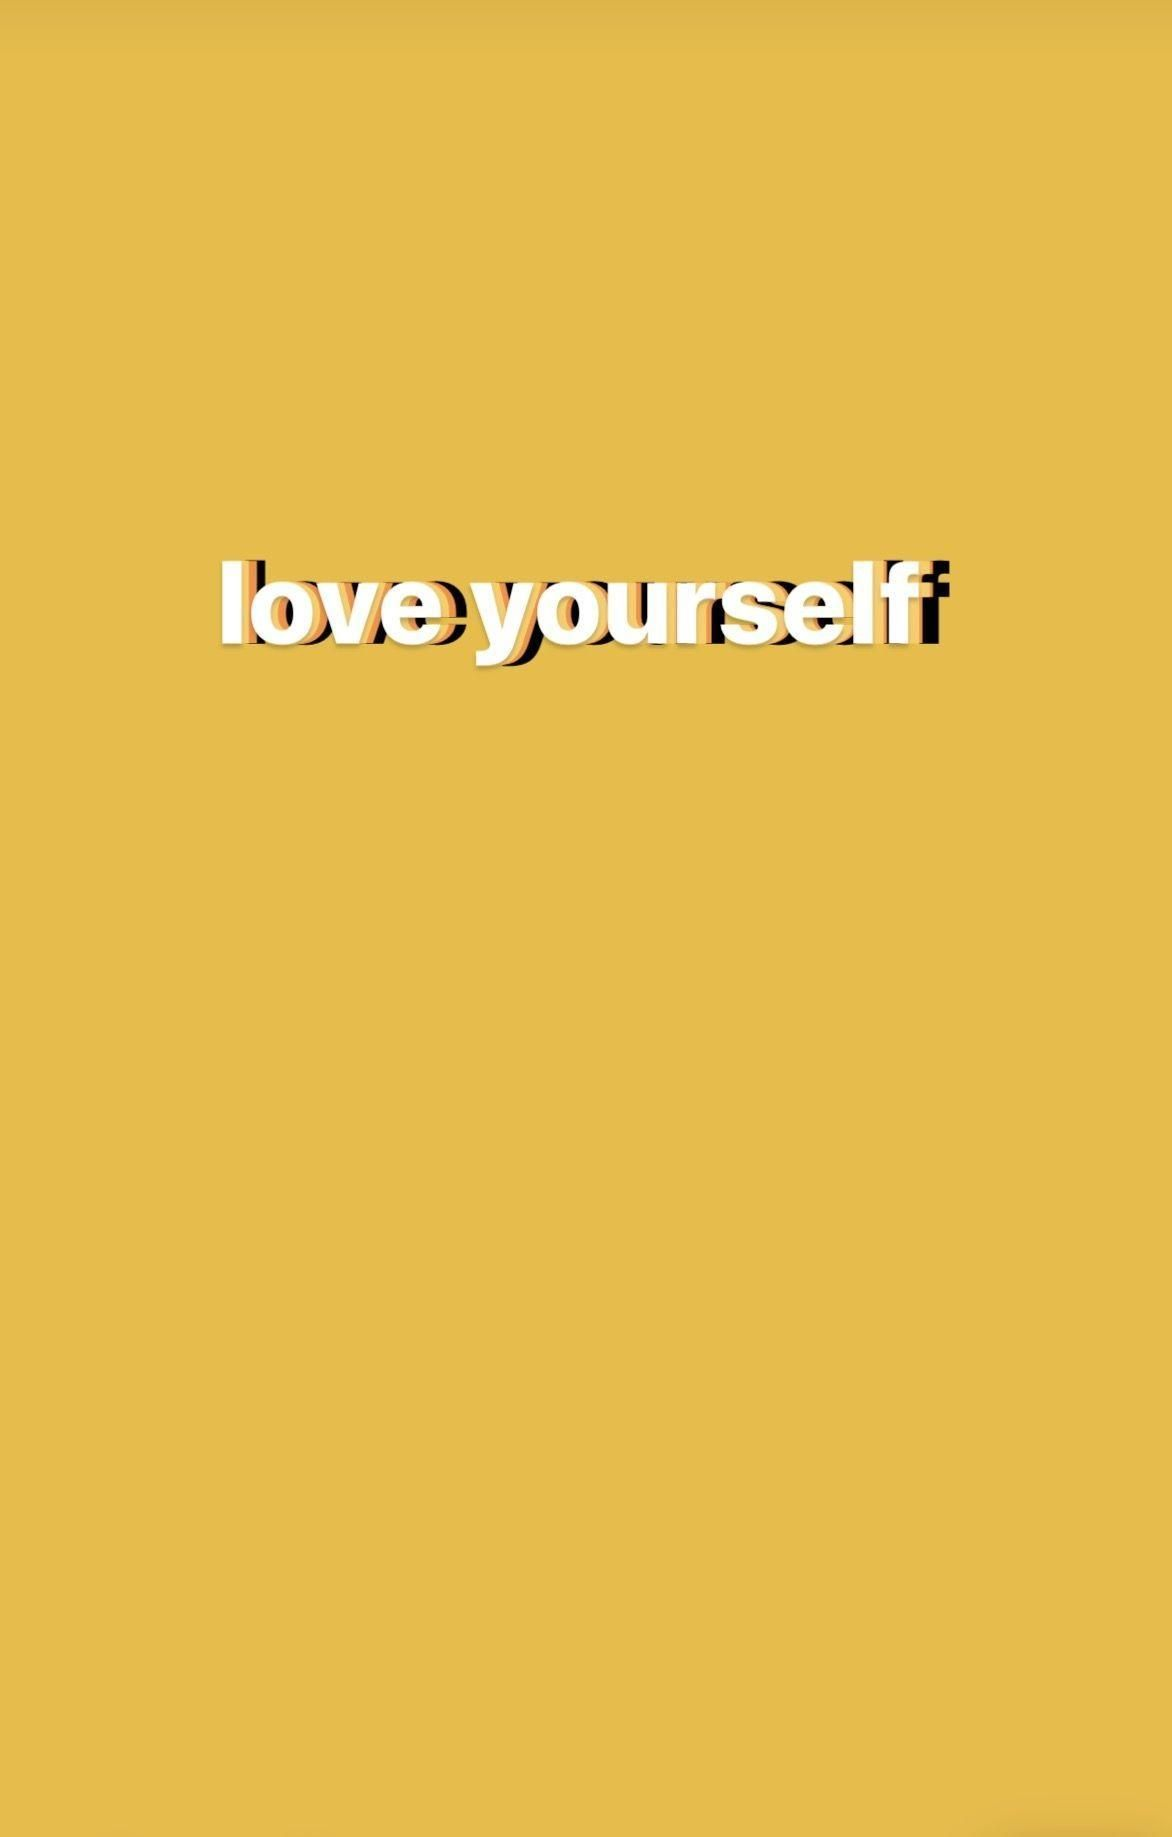 Iphone Aesthetic Pastel Tumblr Pastel Positivity Quotes Pastel Yellow Wallpaper In 2020 Yellow Quotes Yellow Wallpaper Yellow Aesthetic